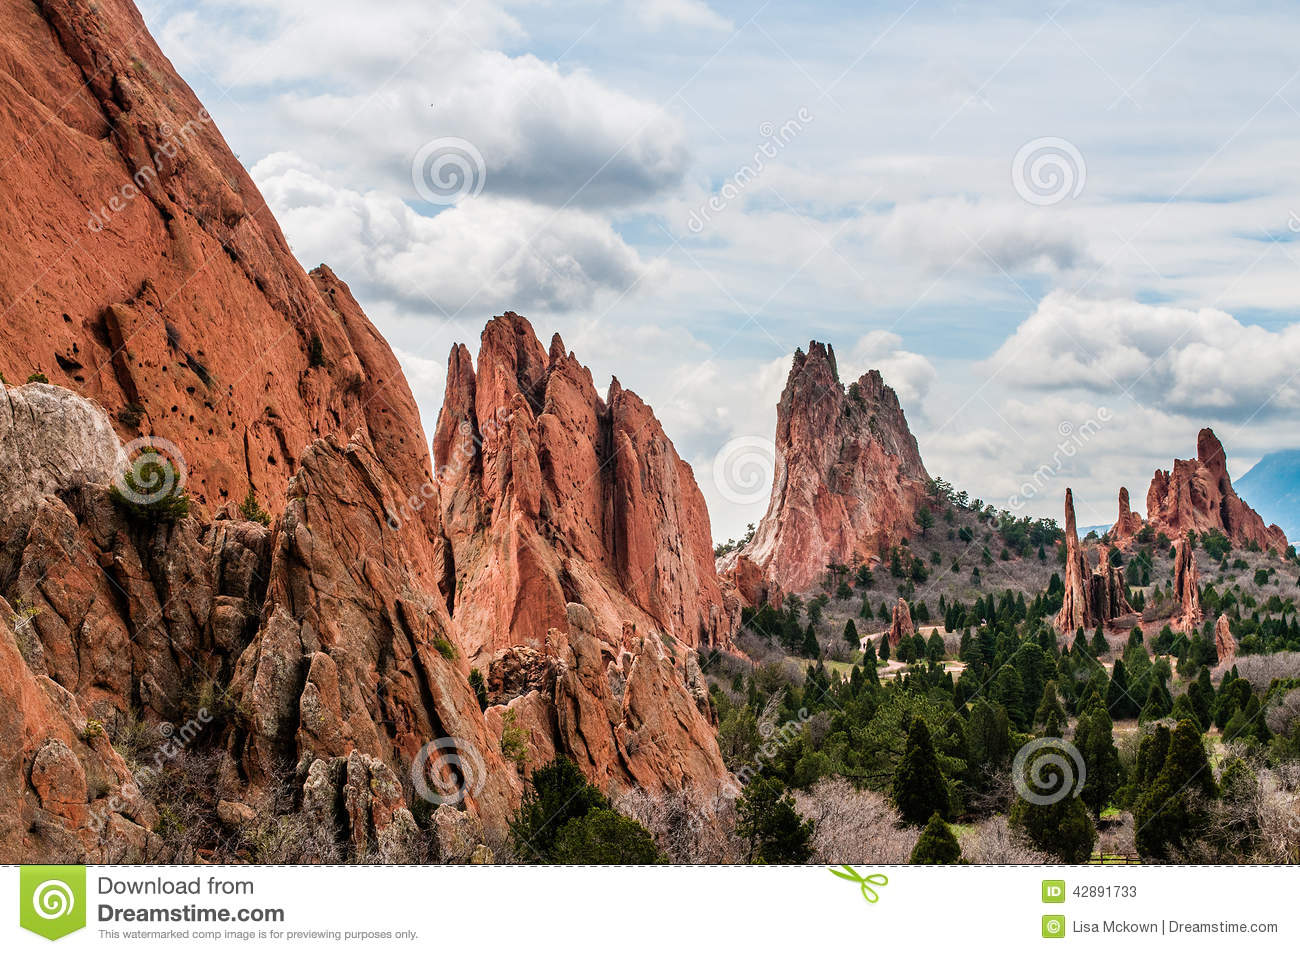 Pike Nursery Near Me: Garden Of The Gods Stock Image. Image Of Landscape, Calm